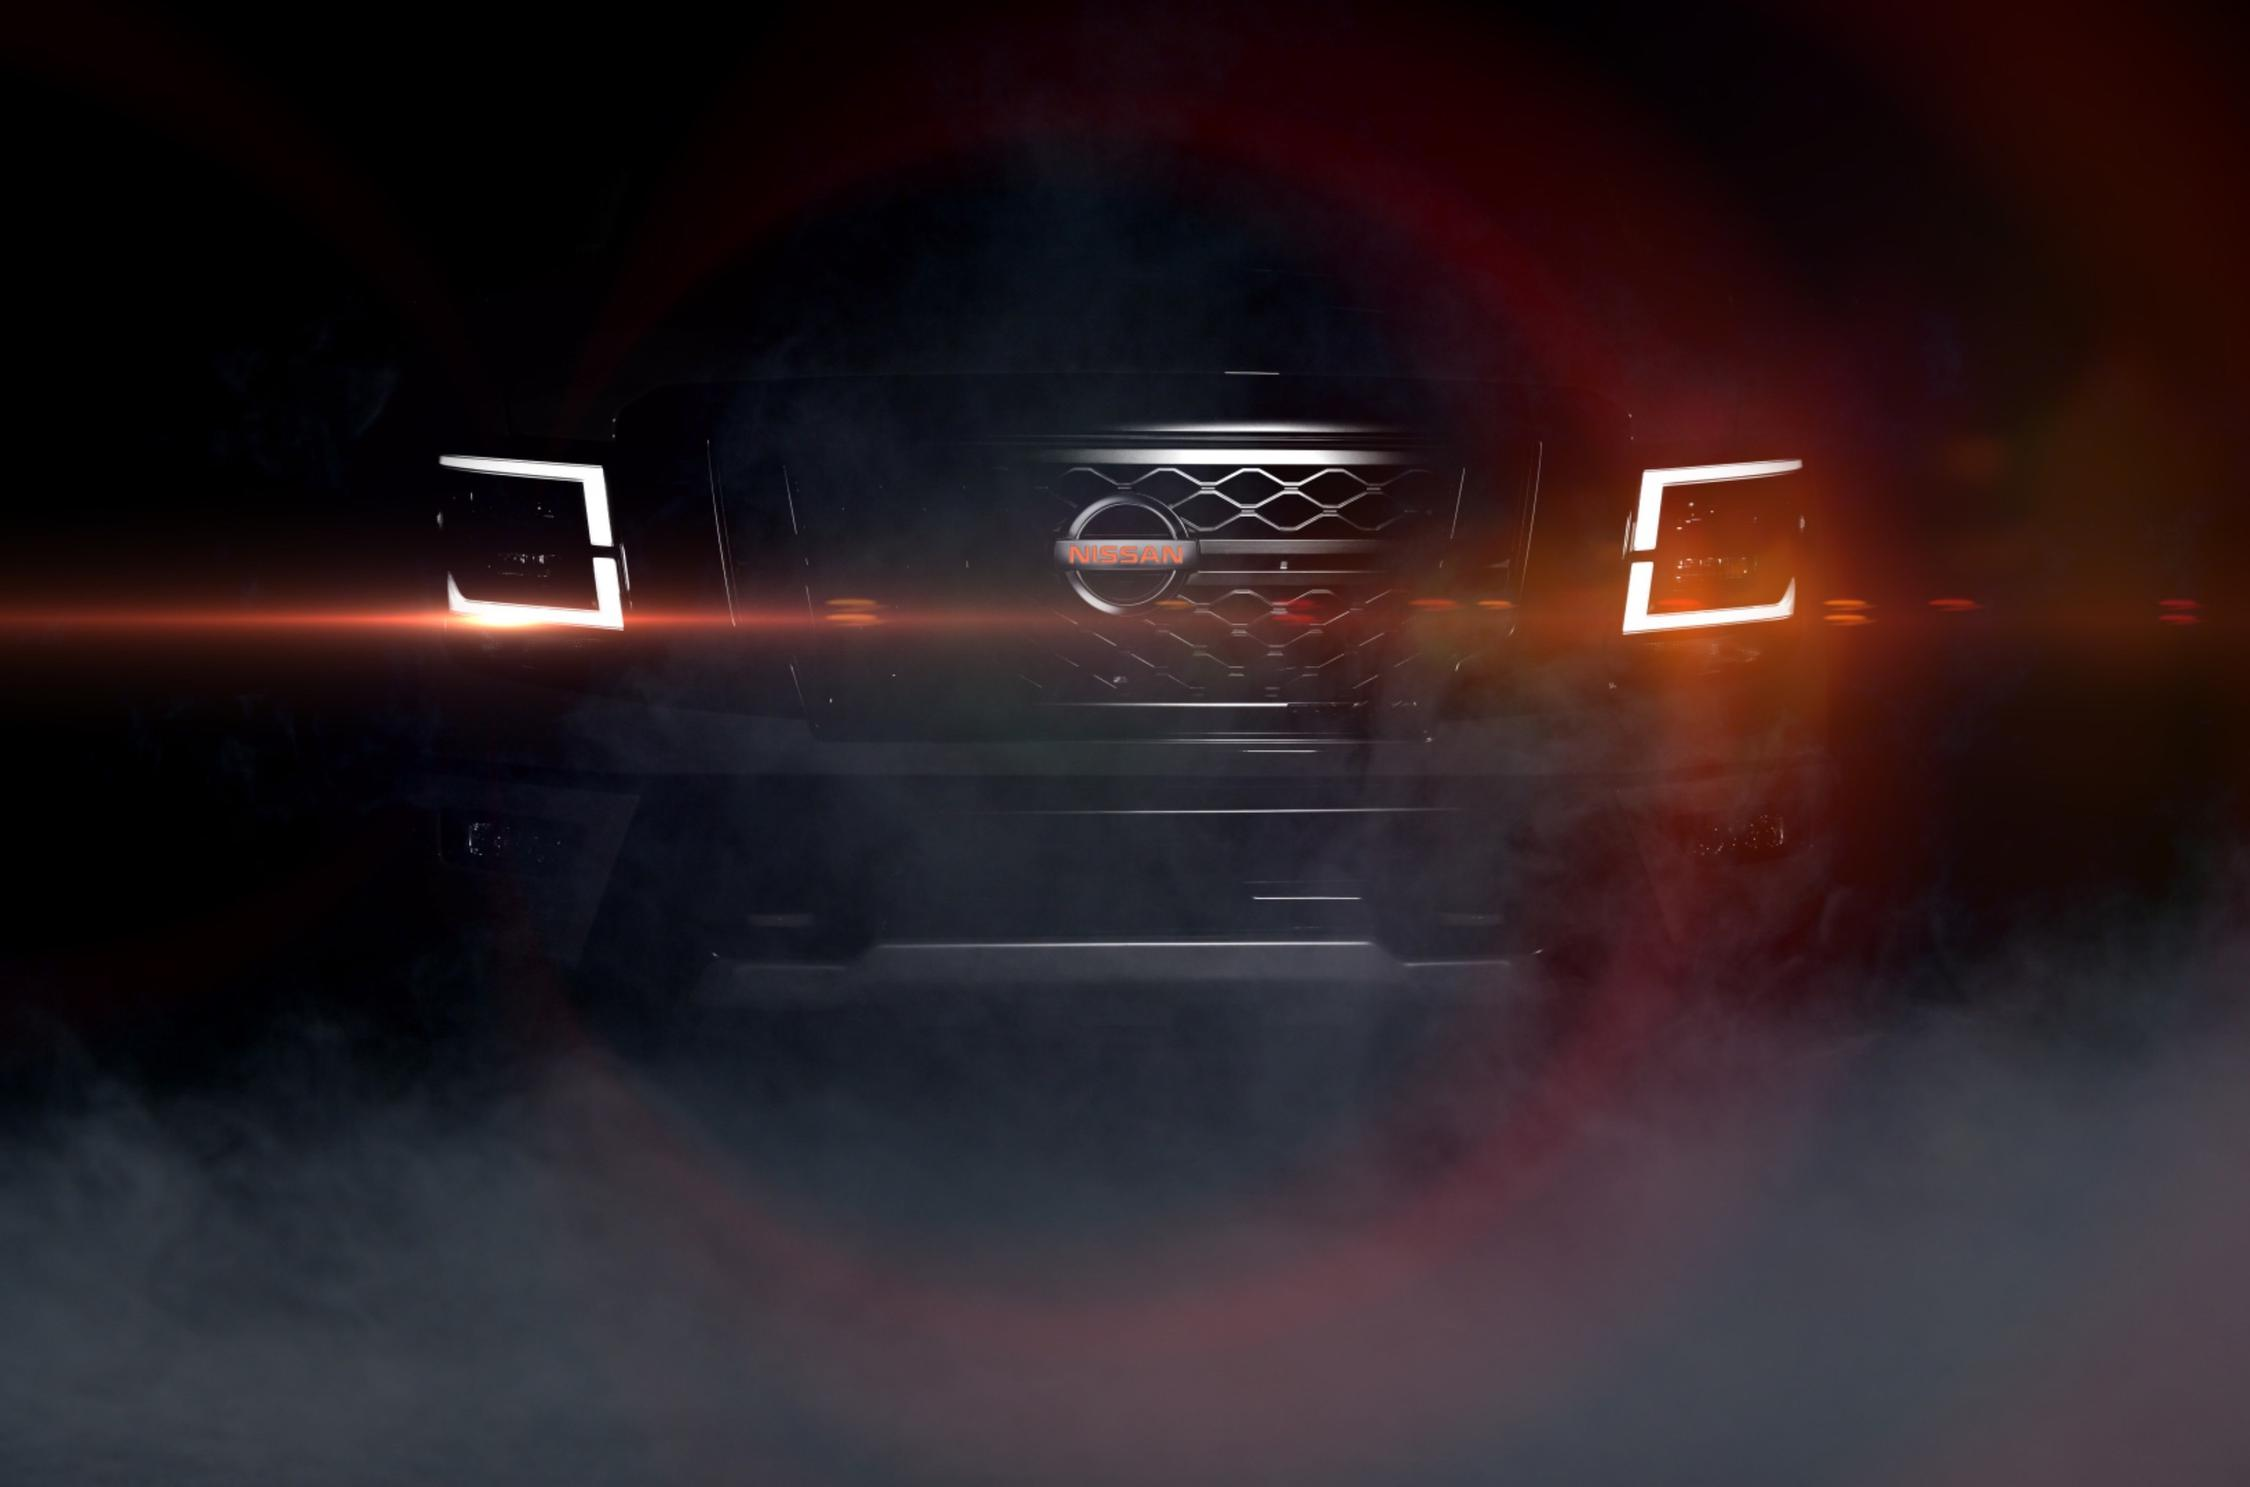 Japanese carmaker Nissan has posted a teaser pic and video of its facelifted Titan truck. The car will be exhibited at the State Fair of Texas on September 26, 2019.